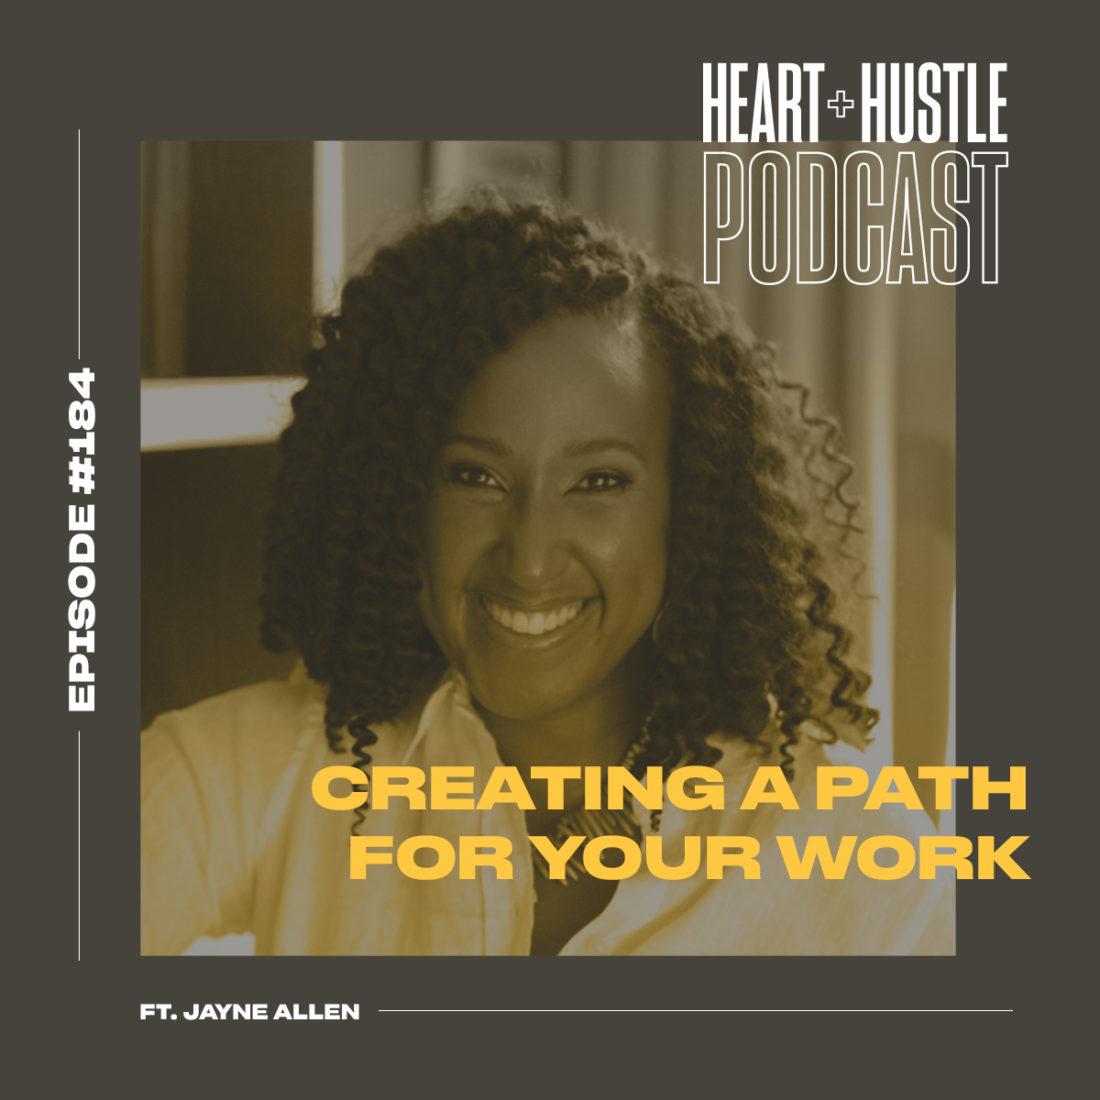 Jayne Allen on Heart and Hustle Podcast – Creating a Path for Your Work